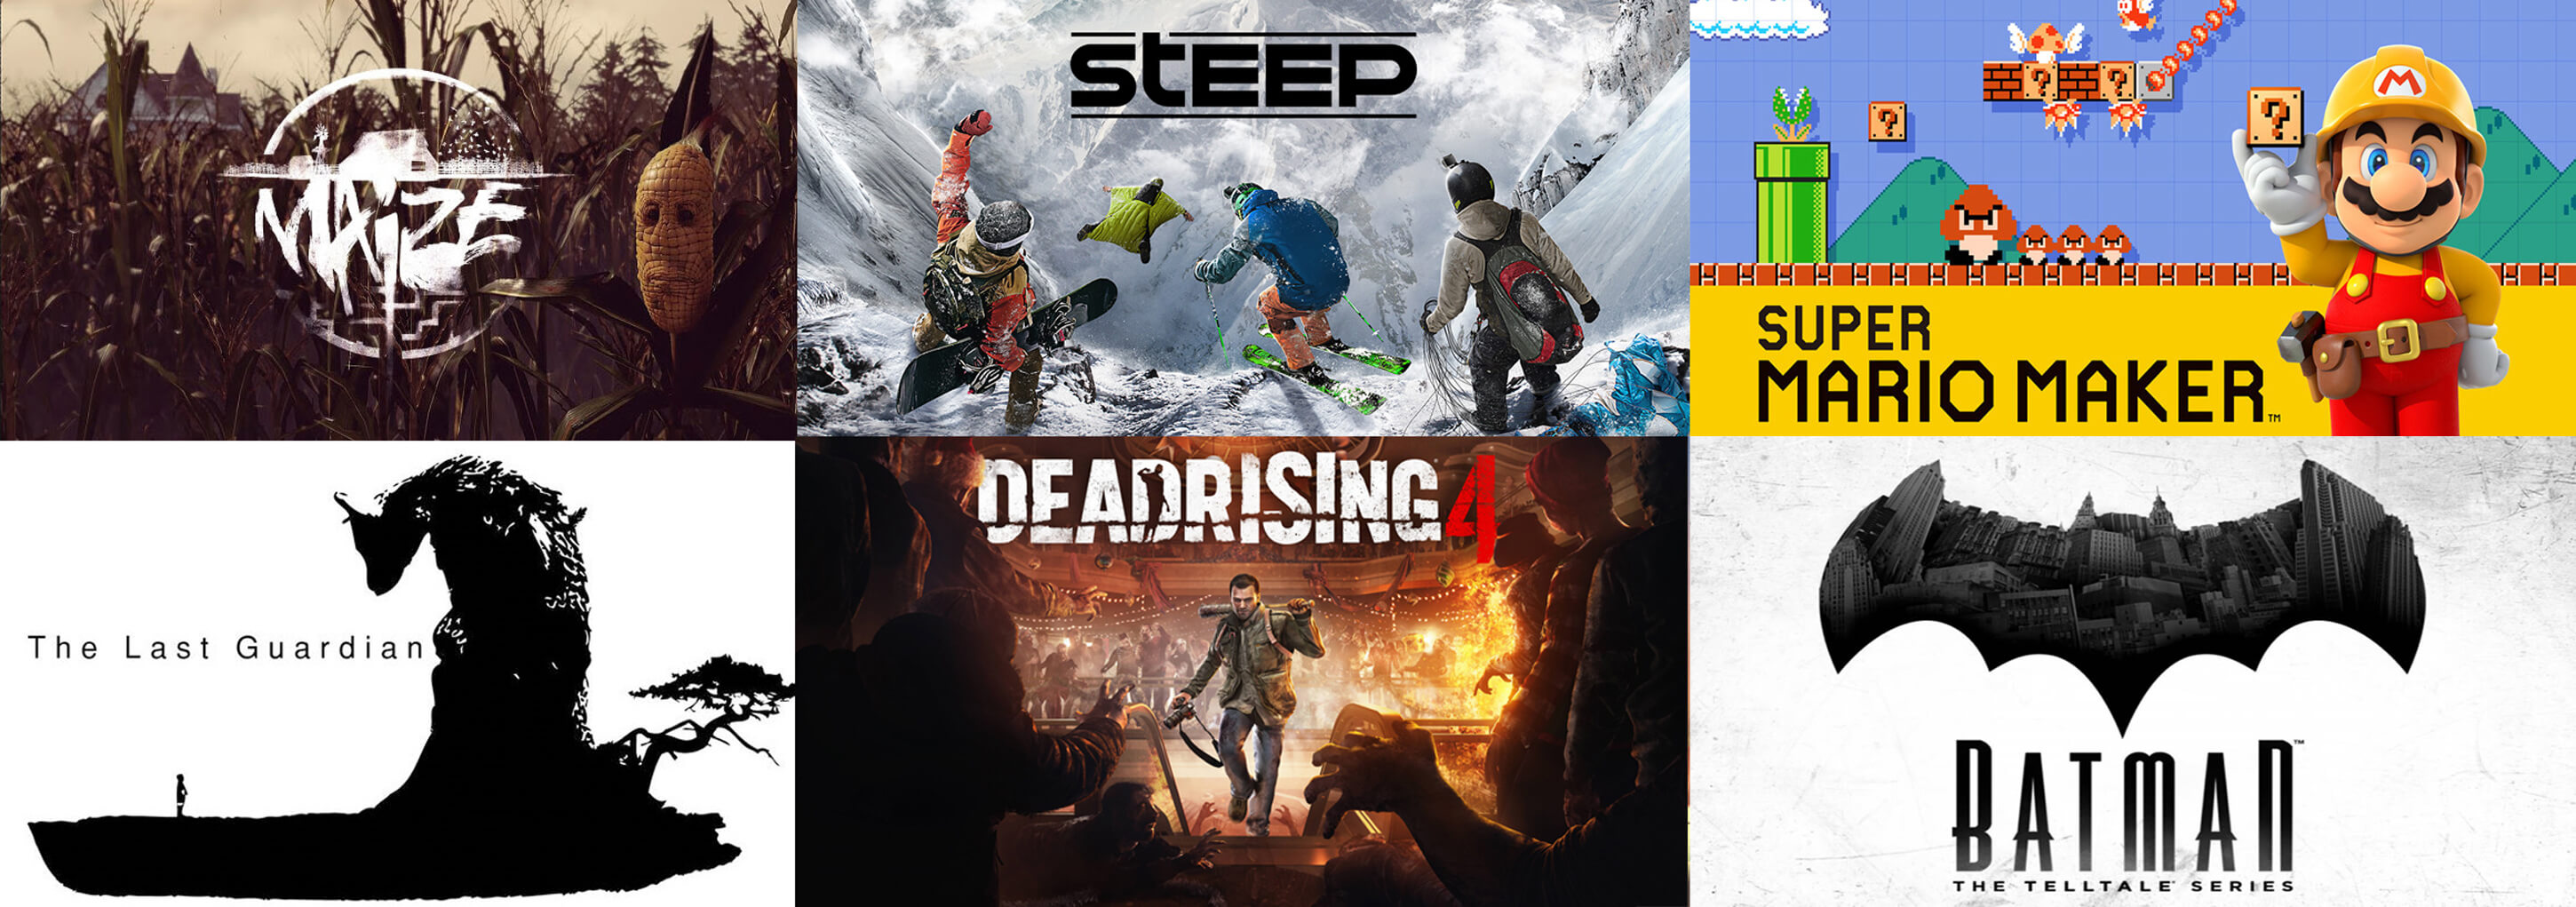 Upcoming Games December 2016